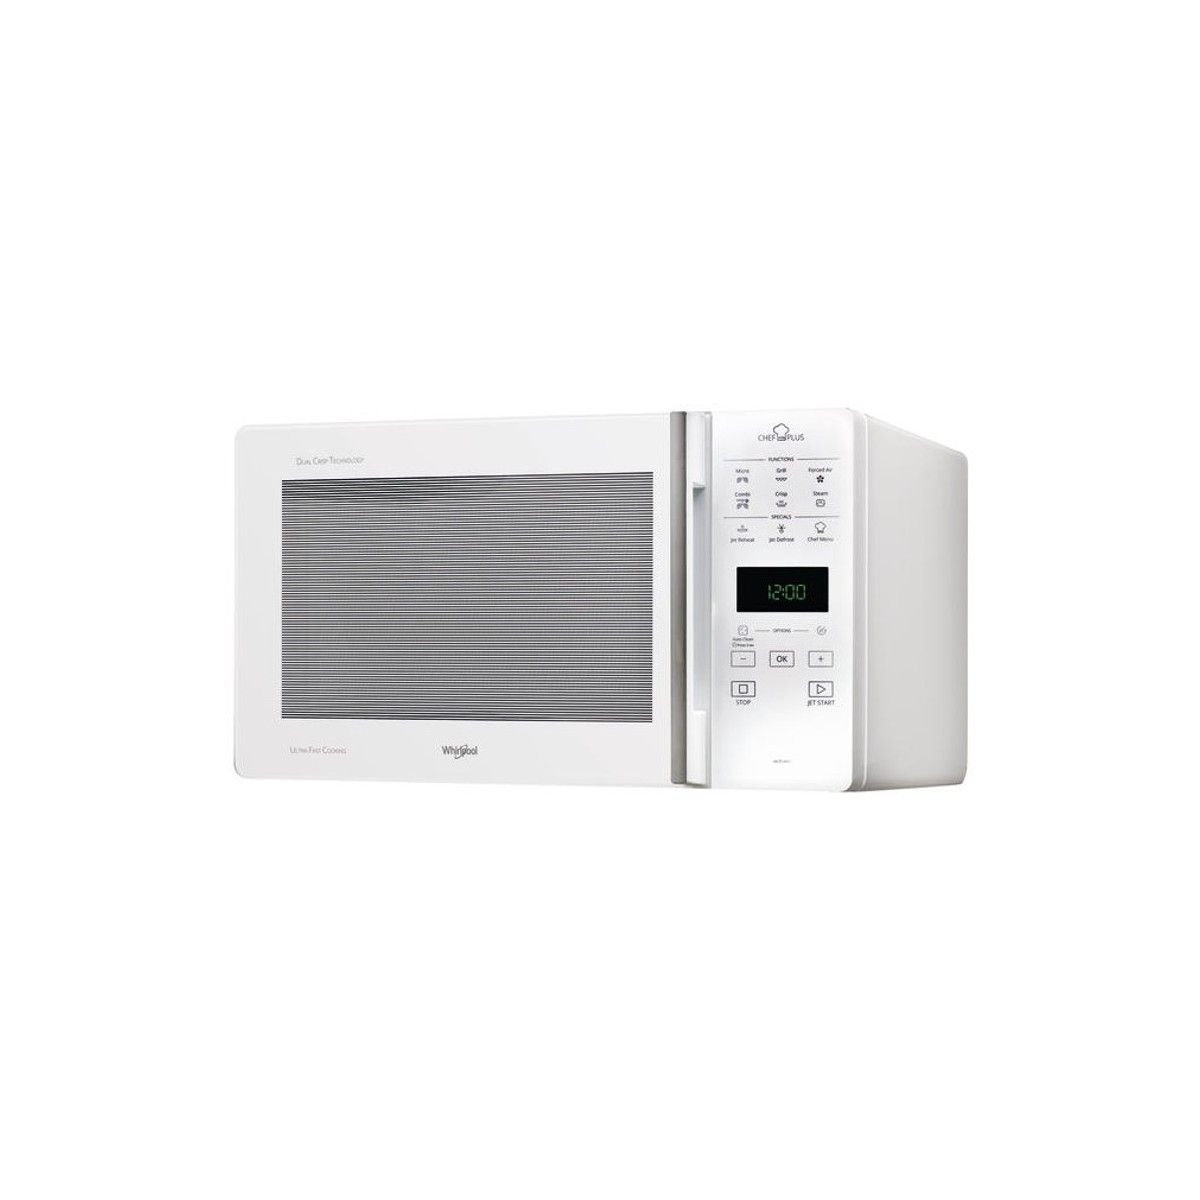 Whirlpool - mcp349/1WH - Microondas + Grill 25L 800 W color blanco ...